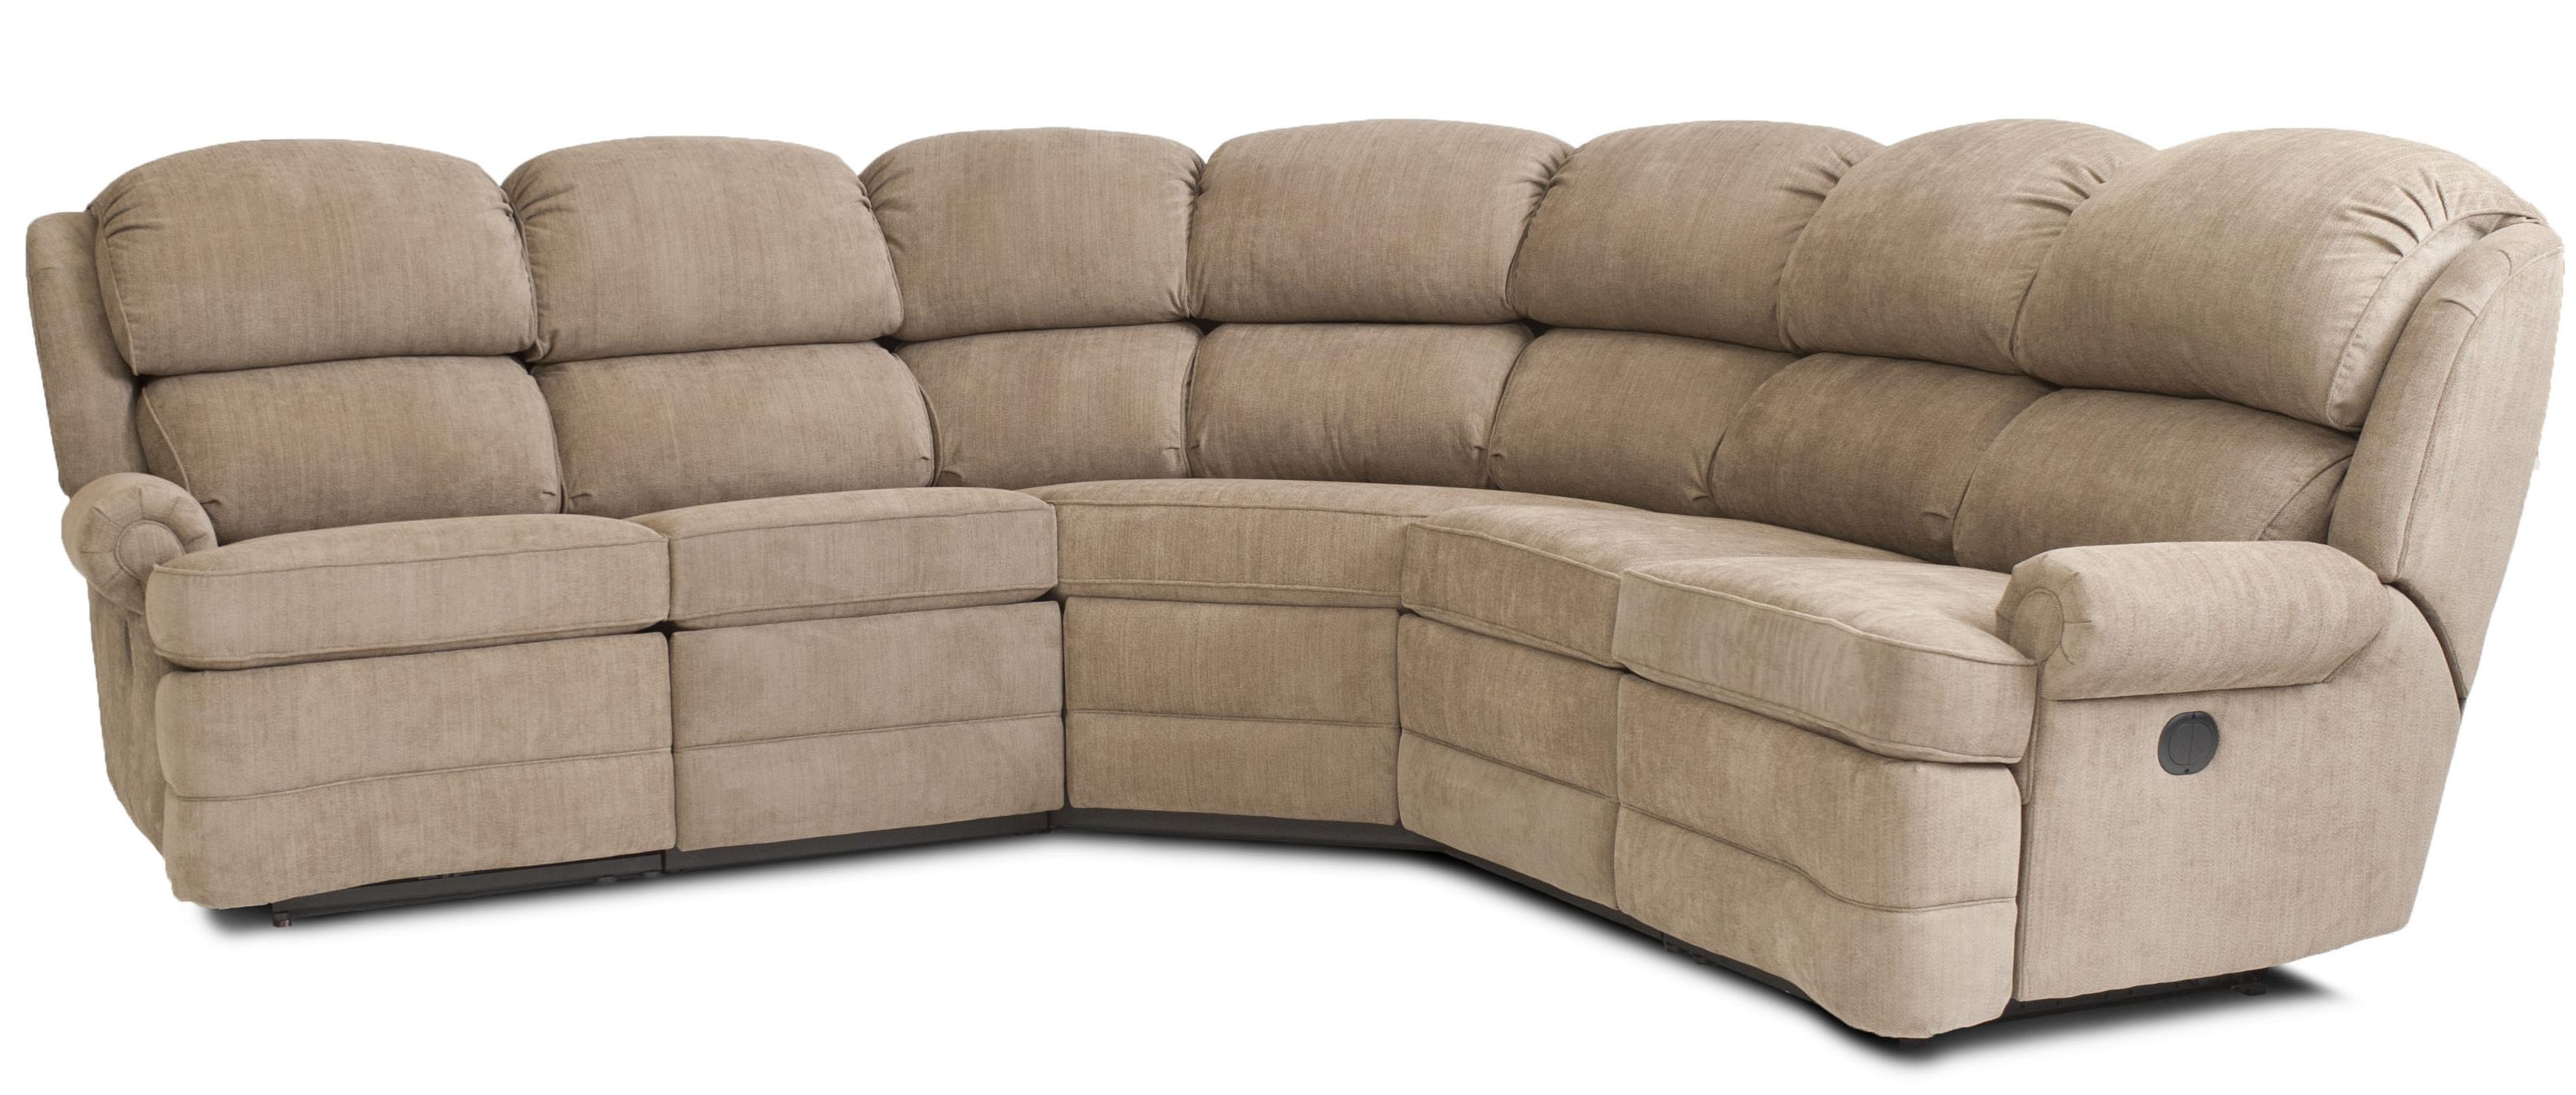 Transitional 5 Piece Reclining Sectional Sofa with Small Rolled